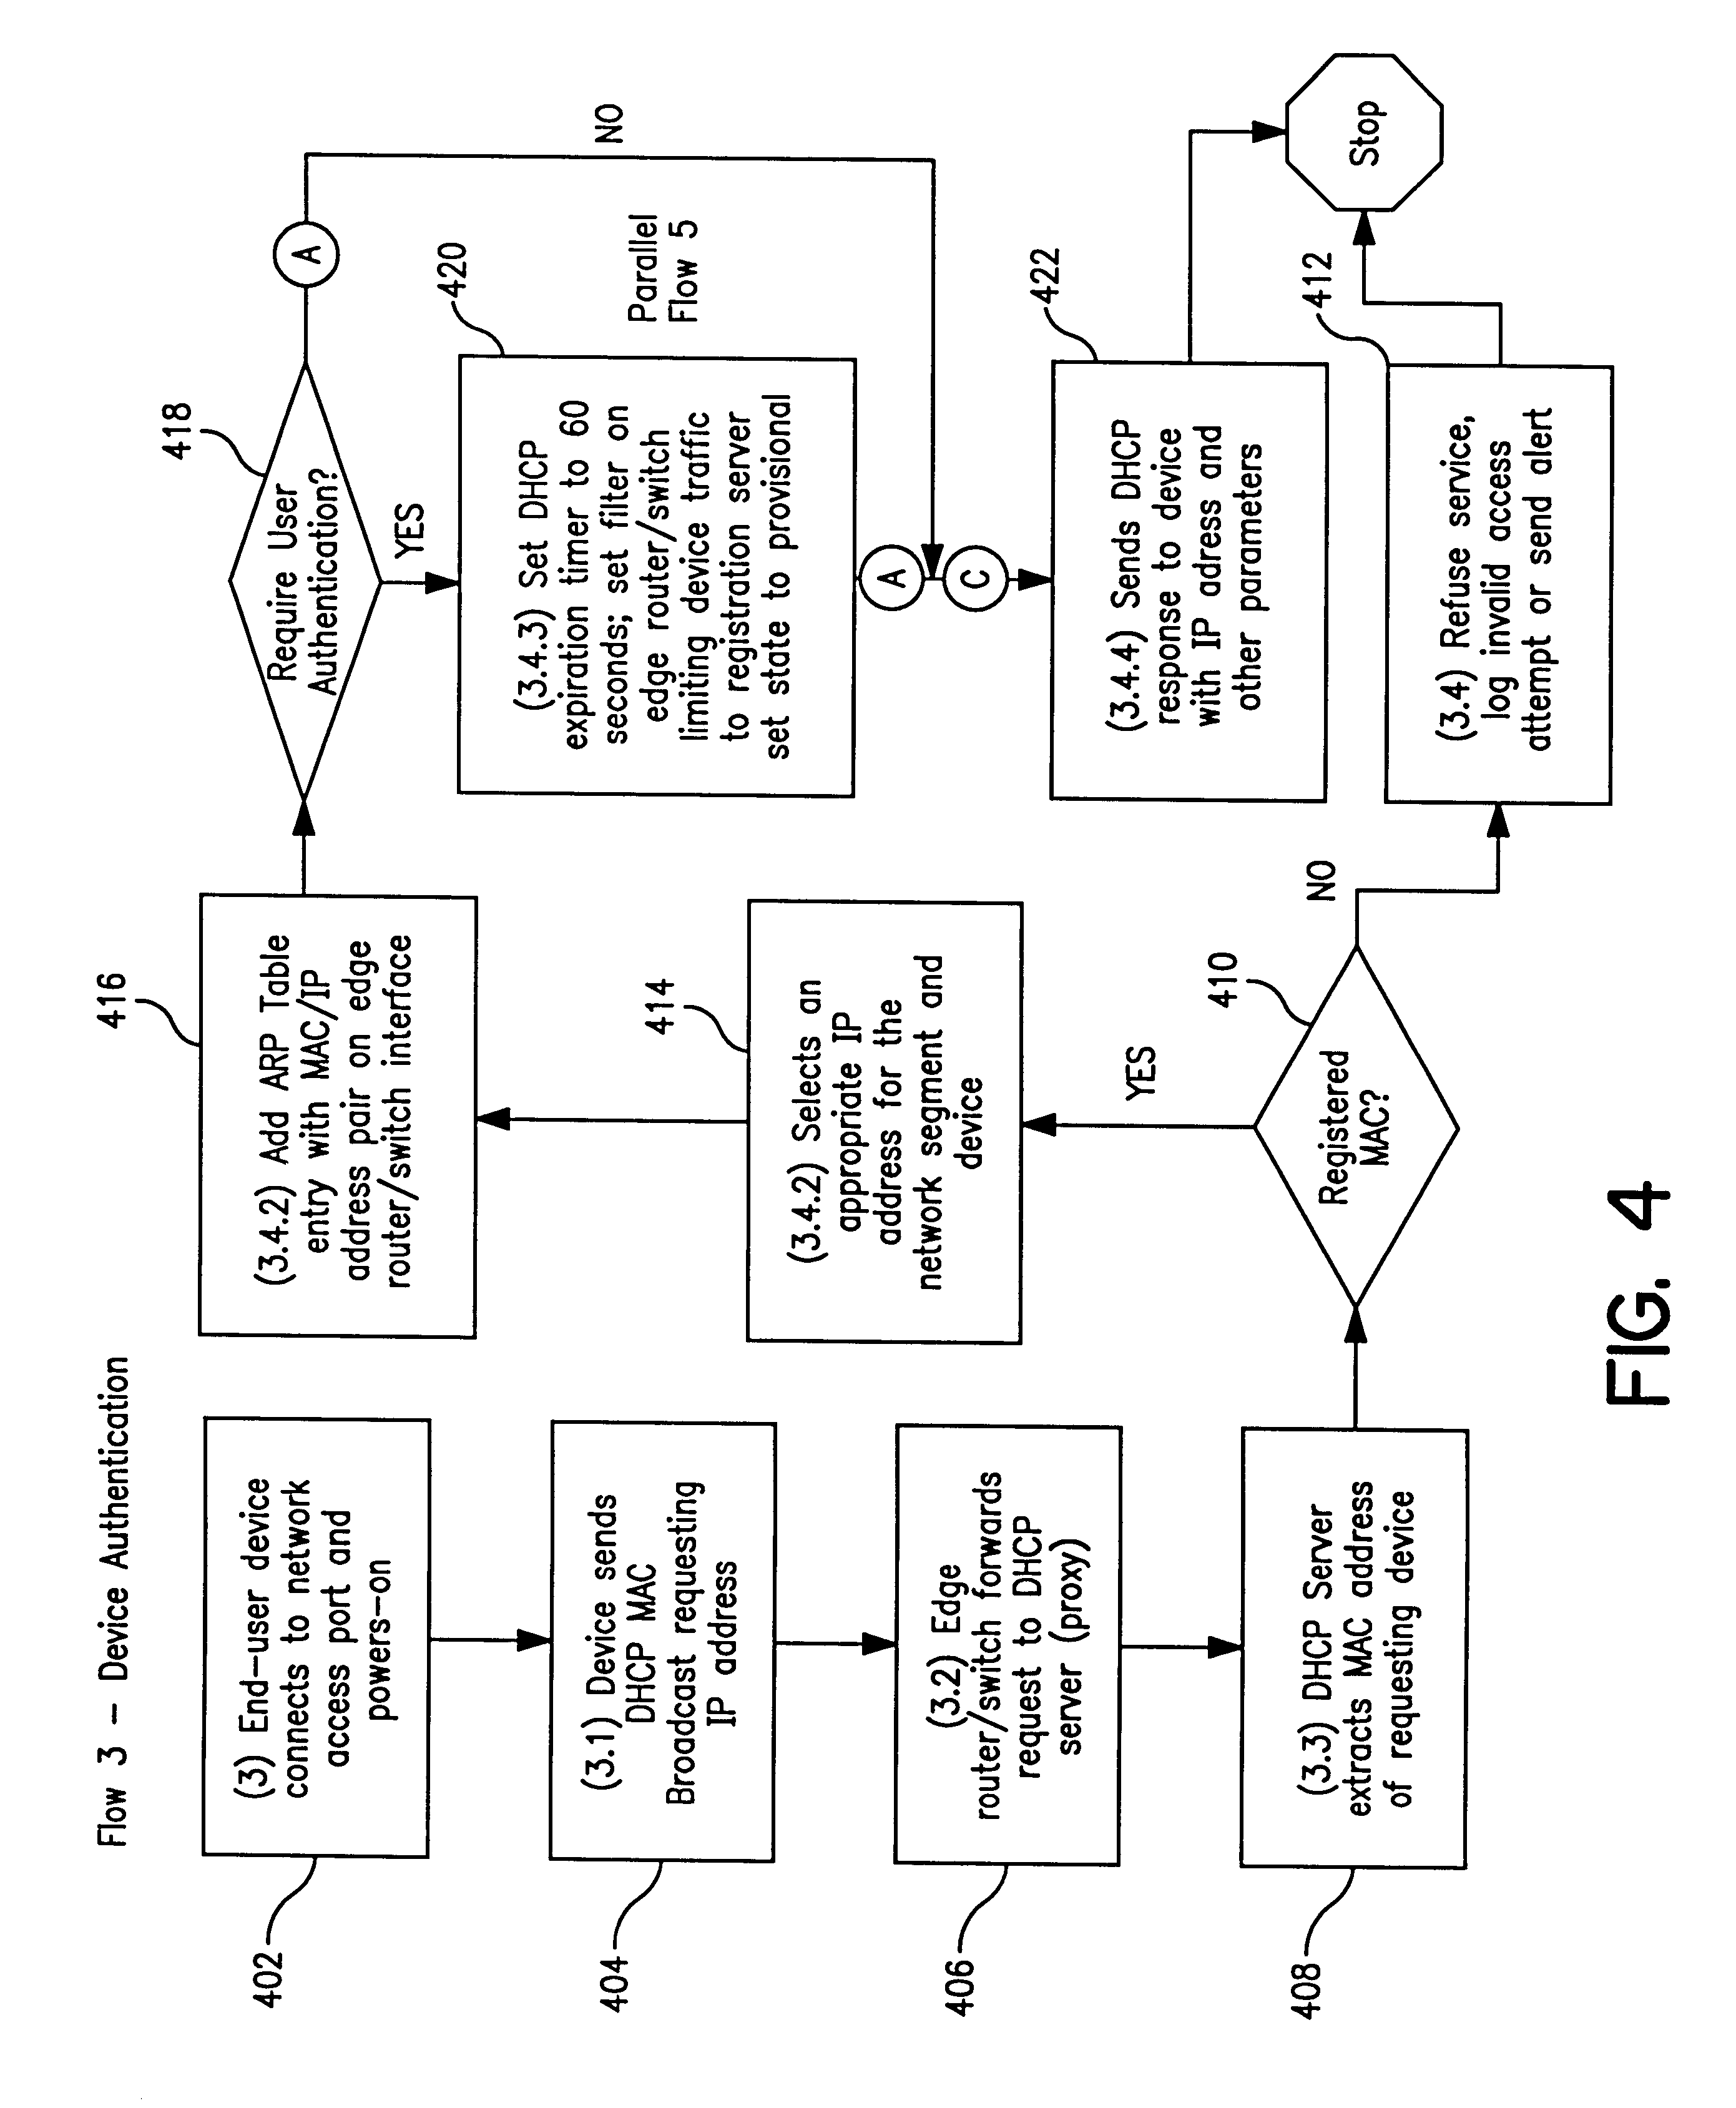 Patent US6393484 - System and method for controlled access to shared